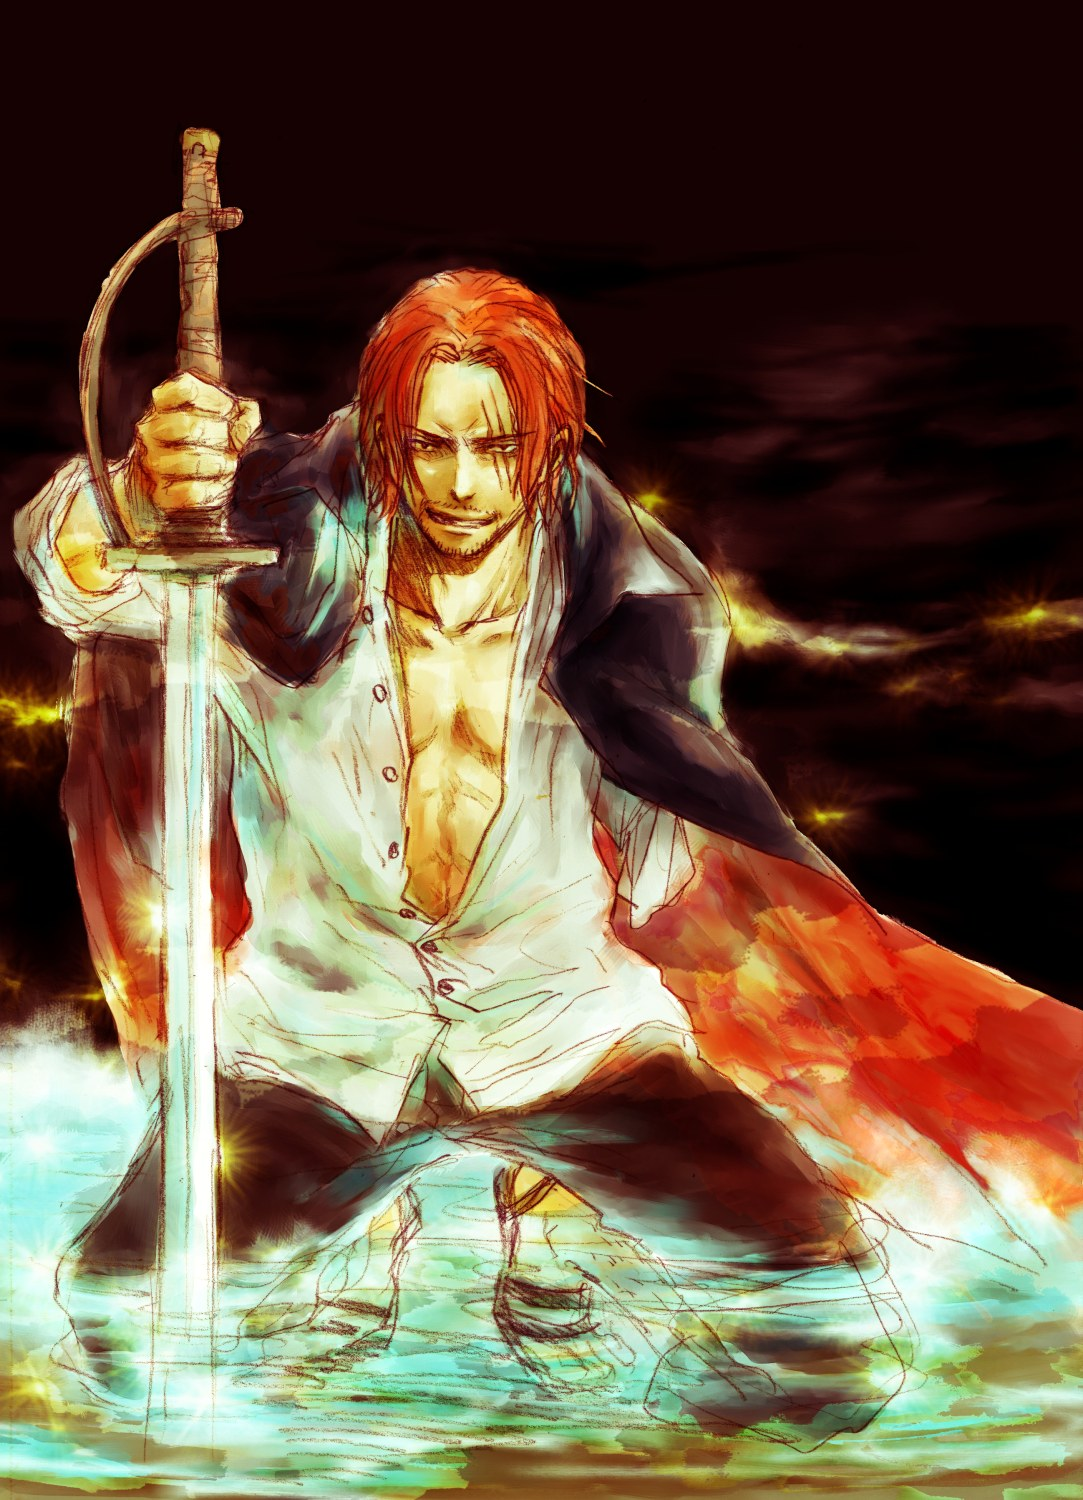 Shanks One Piece Page 3 Of 5 Zerochan Anime Image Board